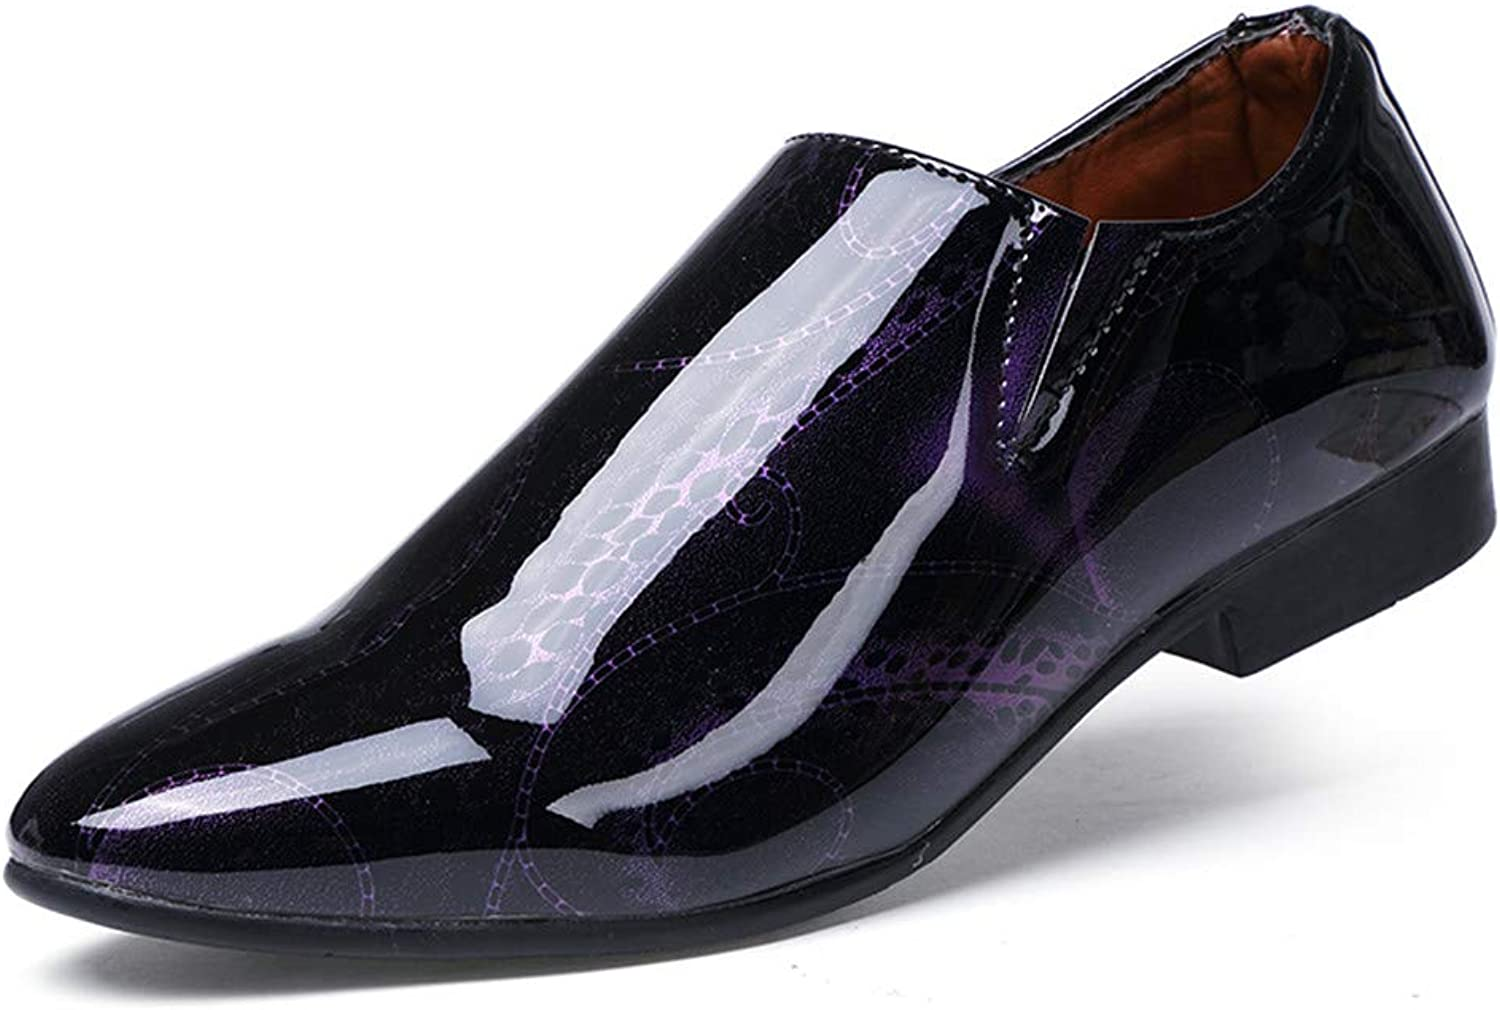 Z.L.F shoes Men's Business Oxford Personality Fashion Show Off The color Pointed Toe Patent Leather Formal shoes Leather shoes